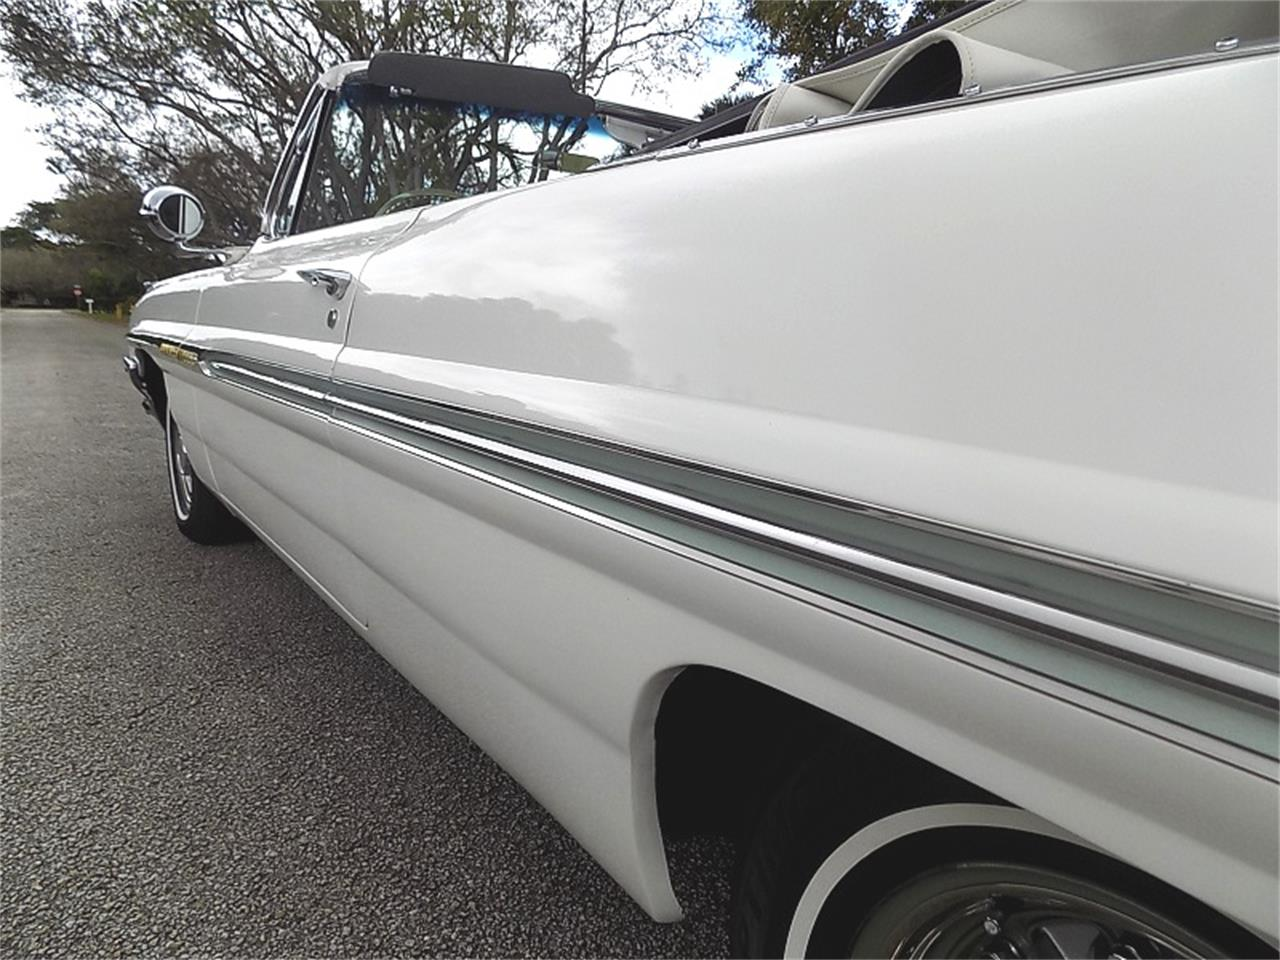 1961 Pontiac Bonneville for sale in Pompano Beach, FL – photo 9